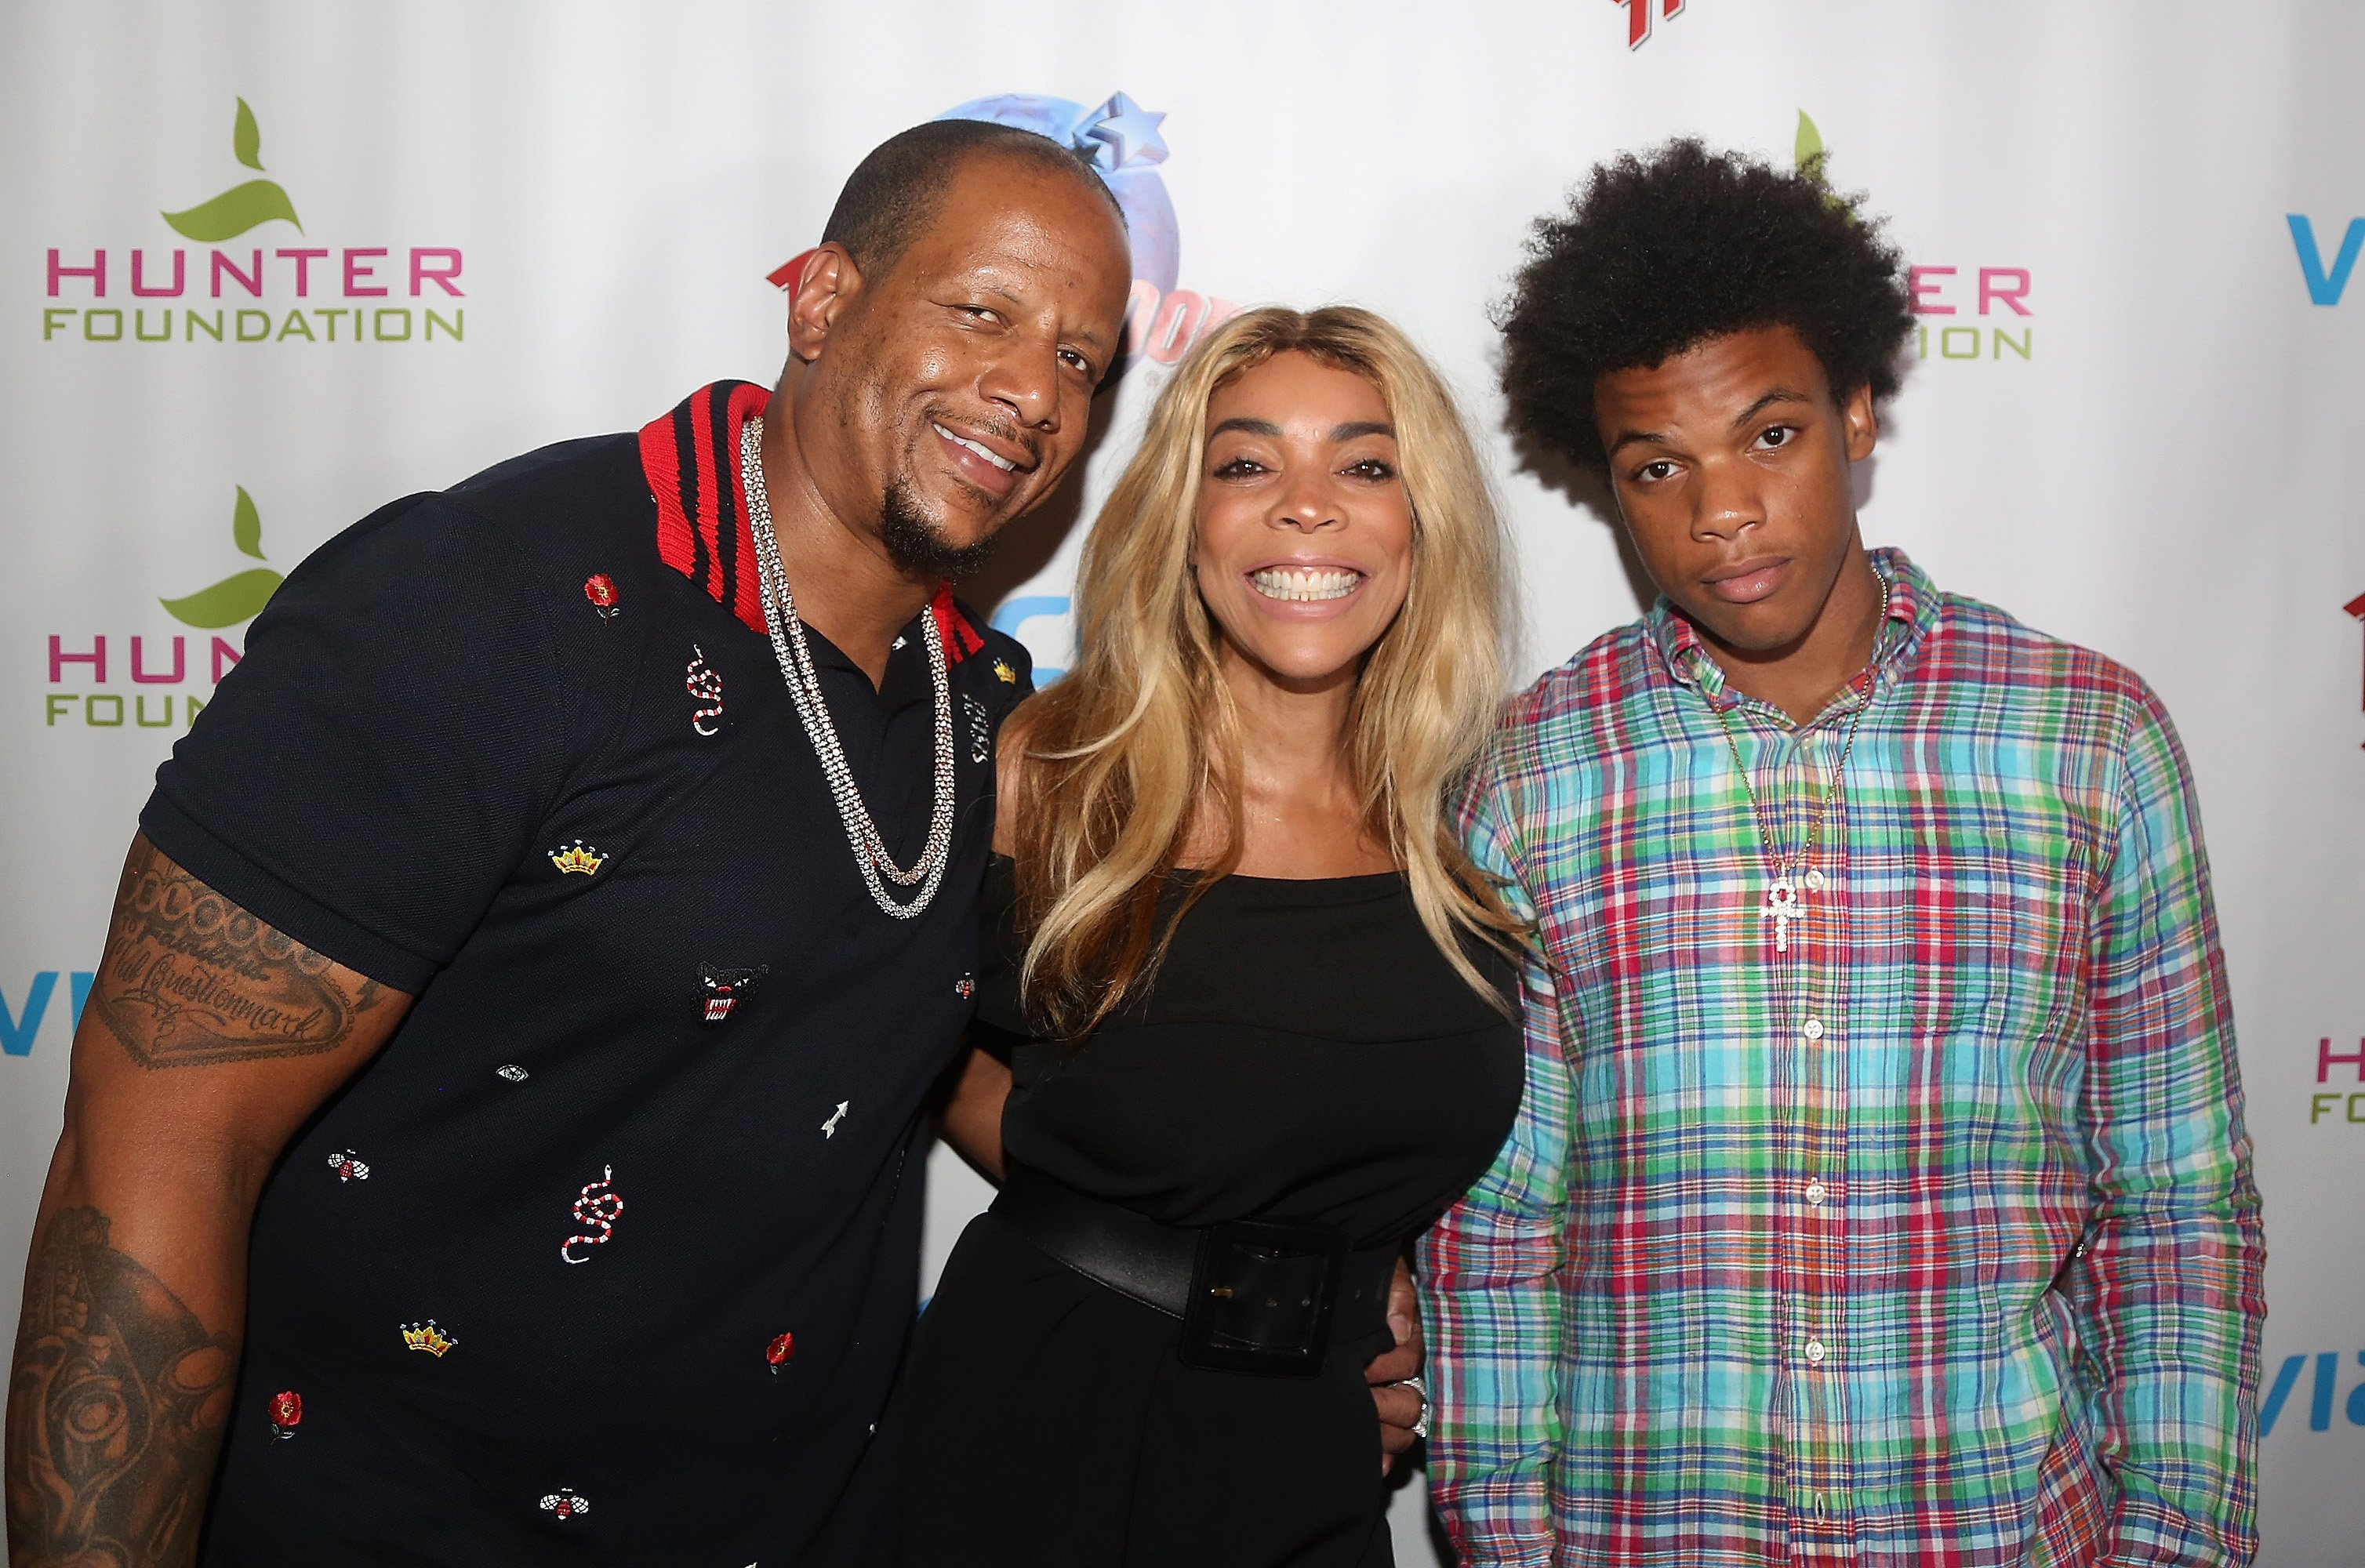 (L-R) Kevin Hunter Sr., Wendy Williams & their son Kevin Hunter Jr. in New York City on July 11, 2017 | Photo: Getty Images